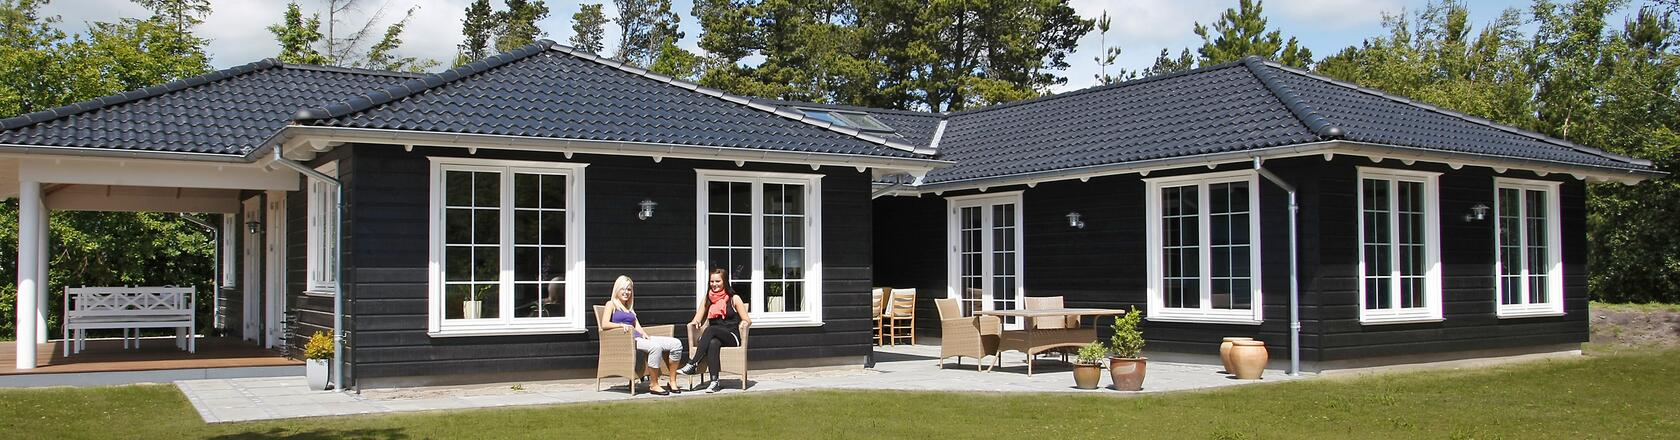 Ålbæk in Denmark — Rent a holiday home with DanCenter